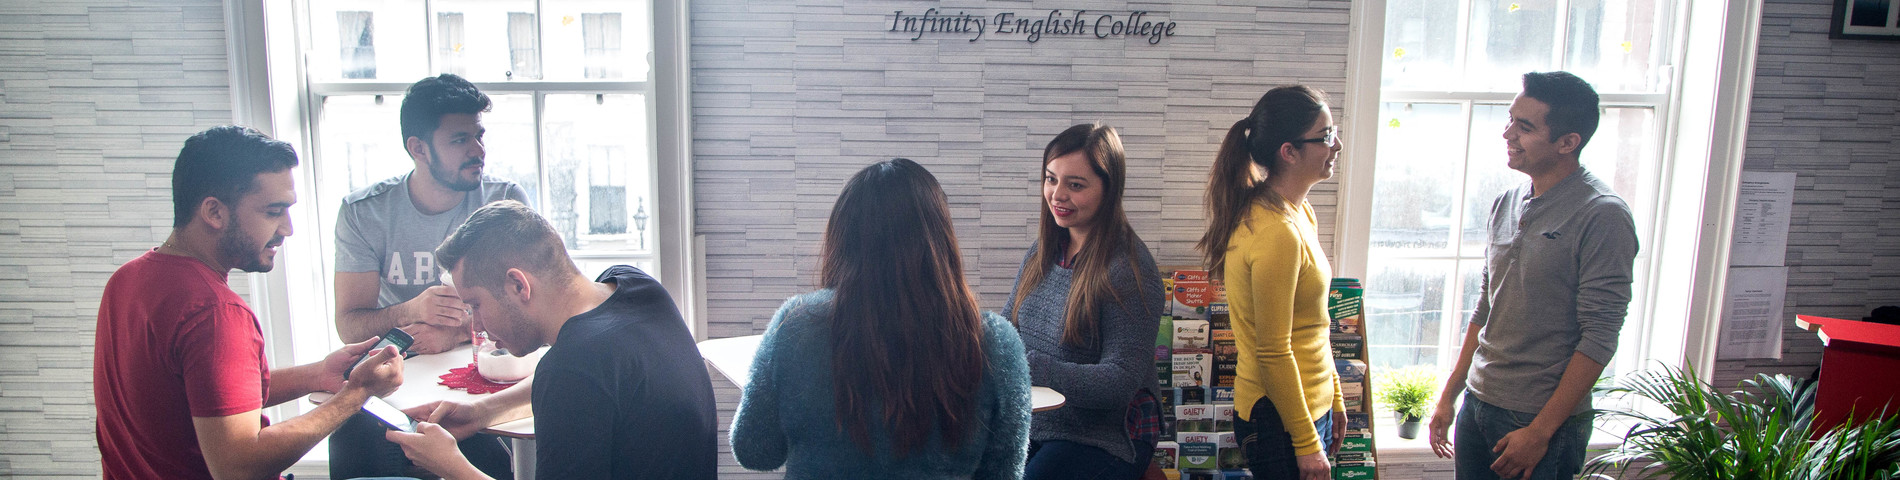 Infinity English College foto 1